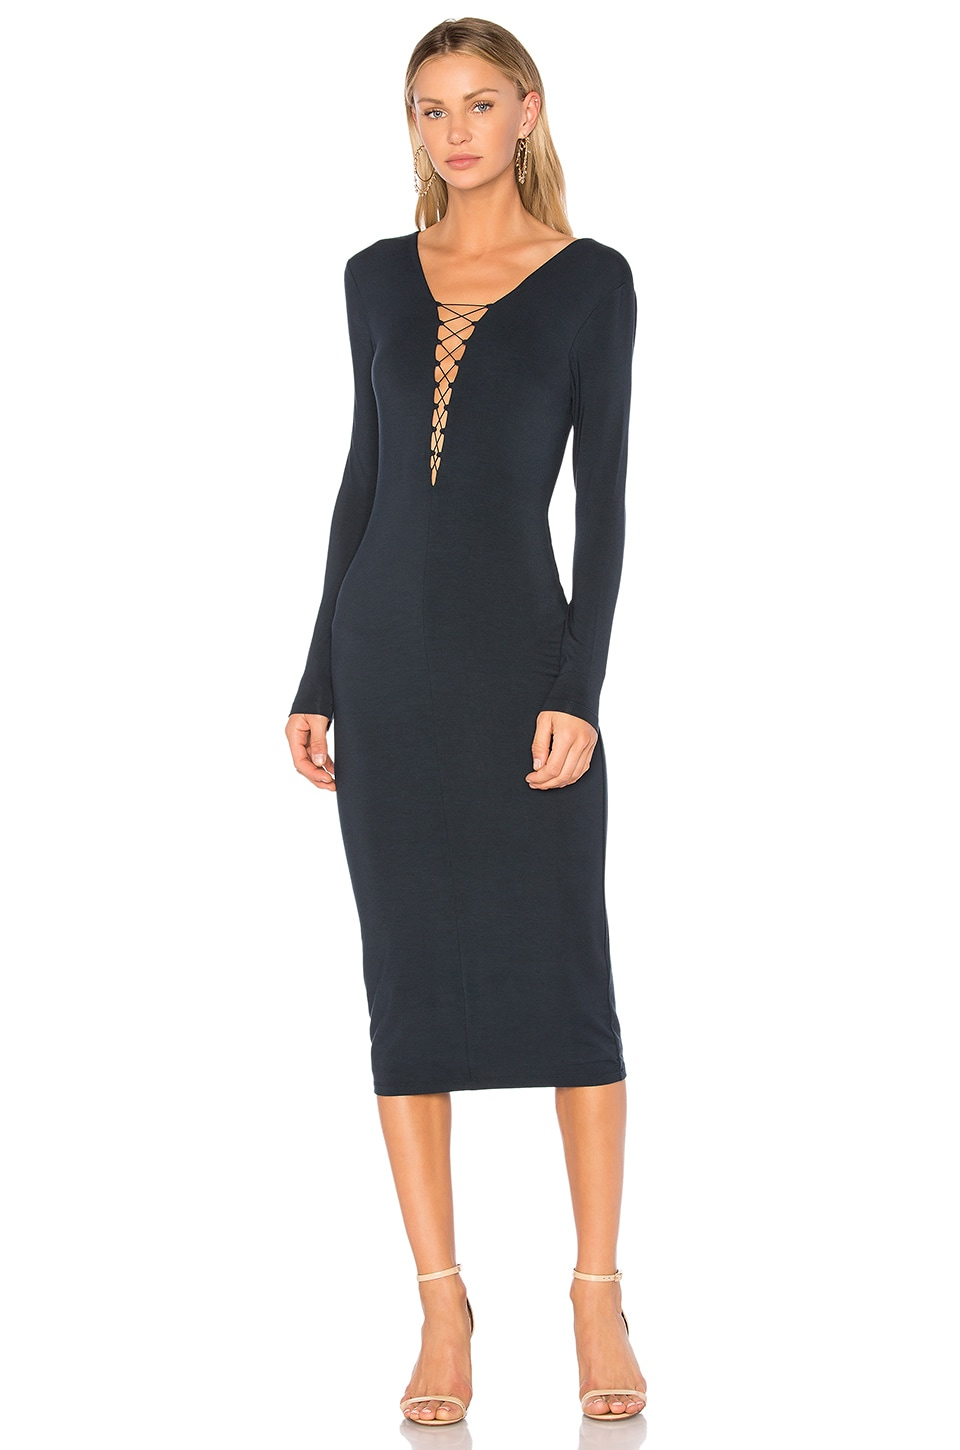 Lace Up Midi Dress by T by Alexander Wang